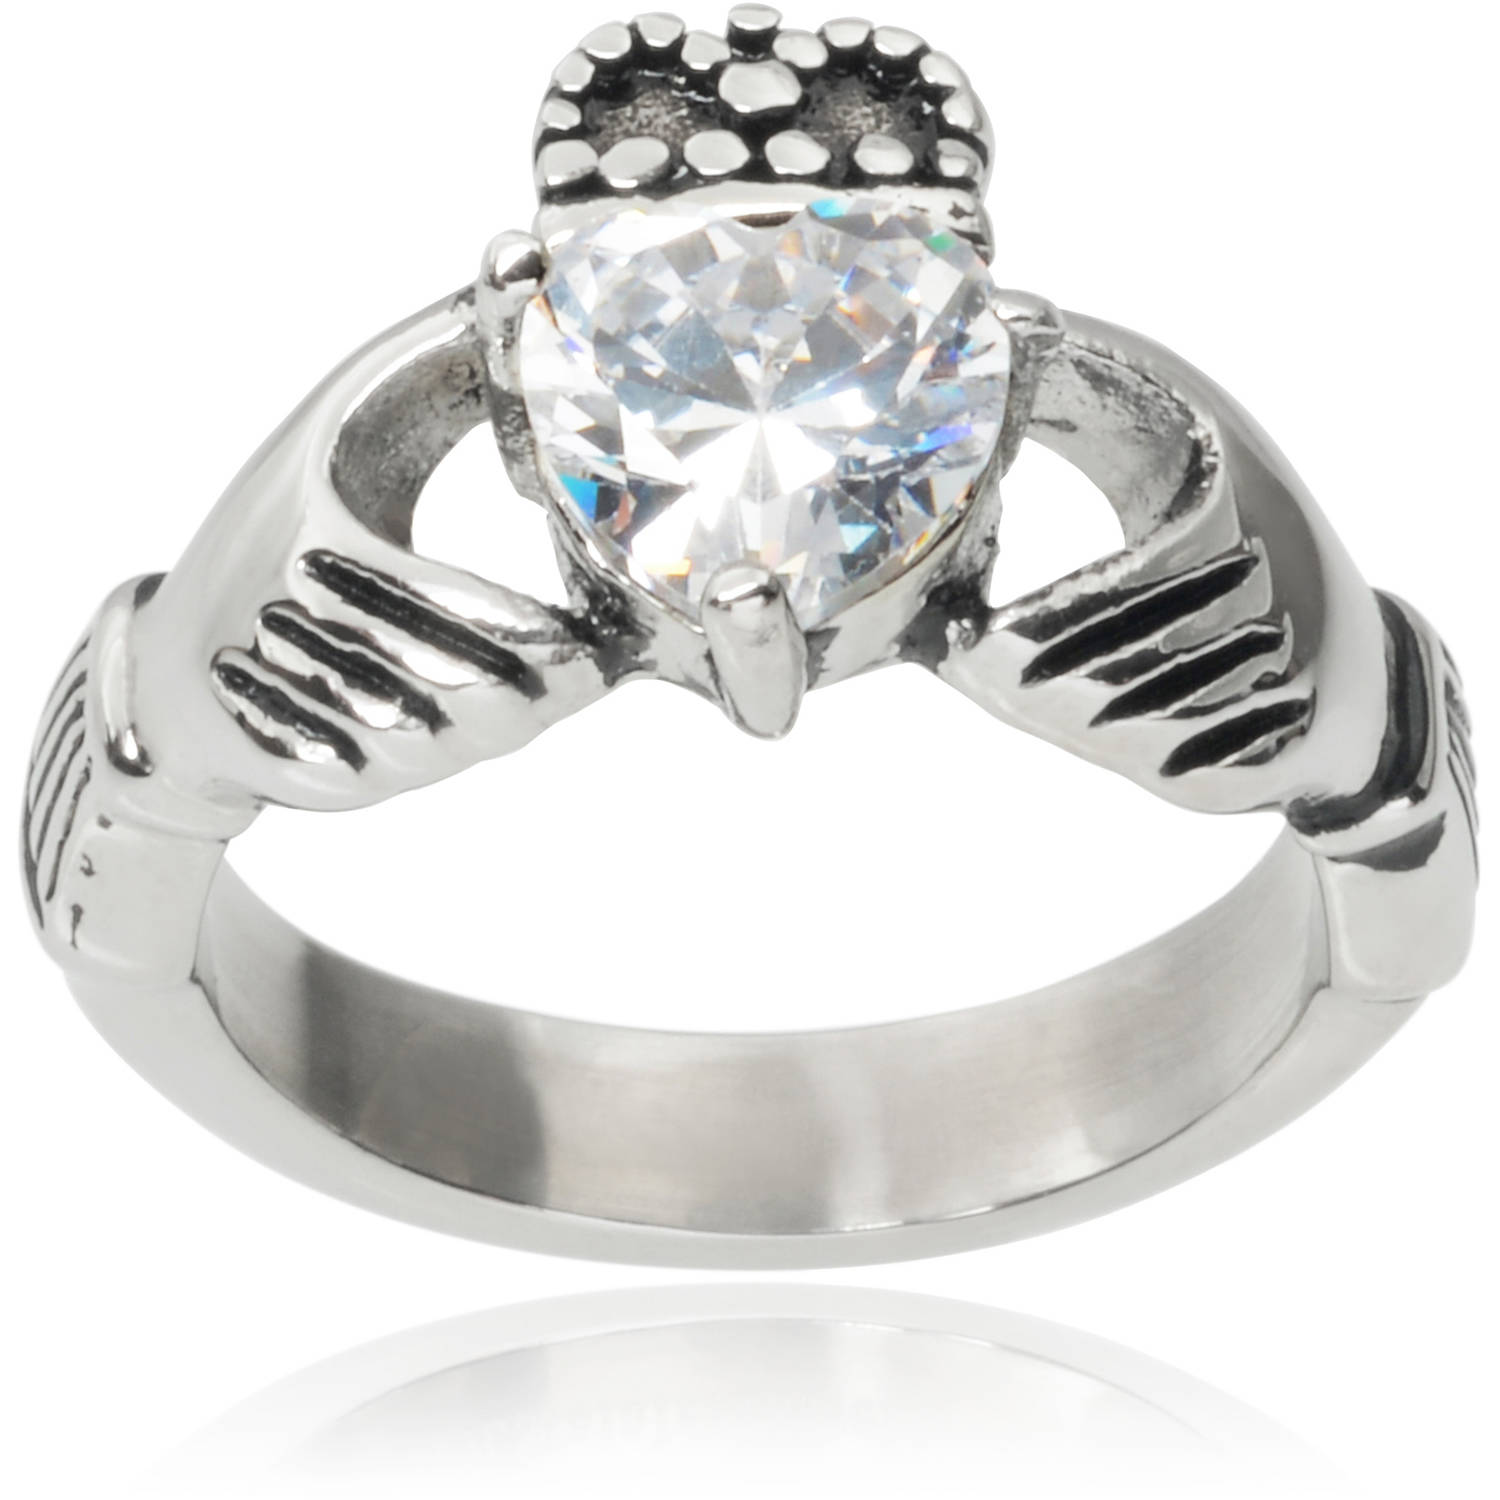 Brinley Co. Stainless Steel 2-5/8 Carat T.G.W. Heart Cubic Zirconia Claddagh Ring